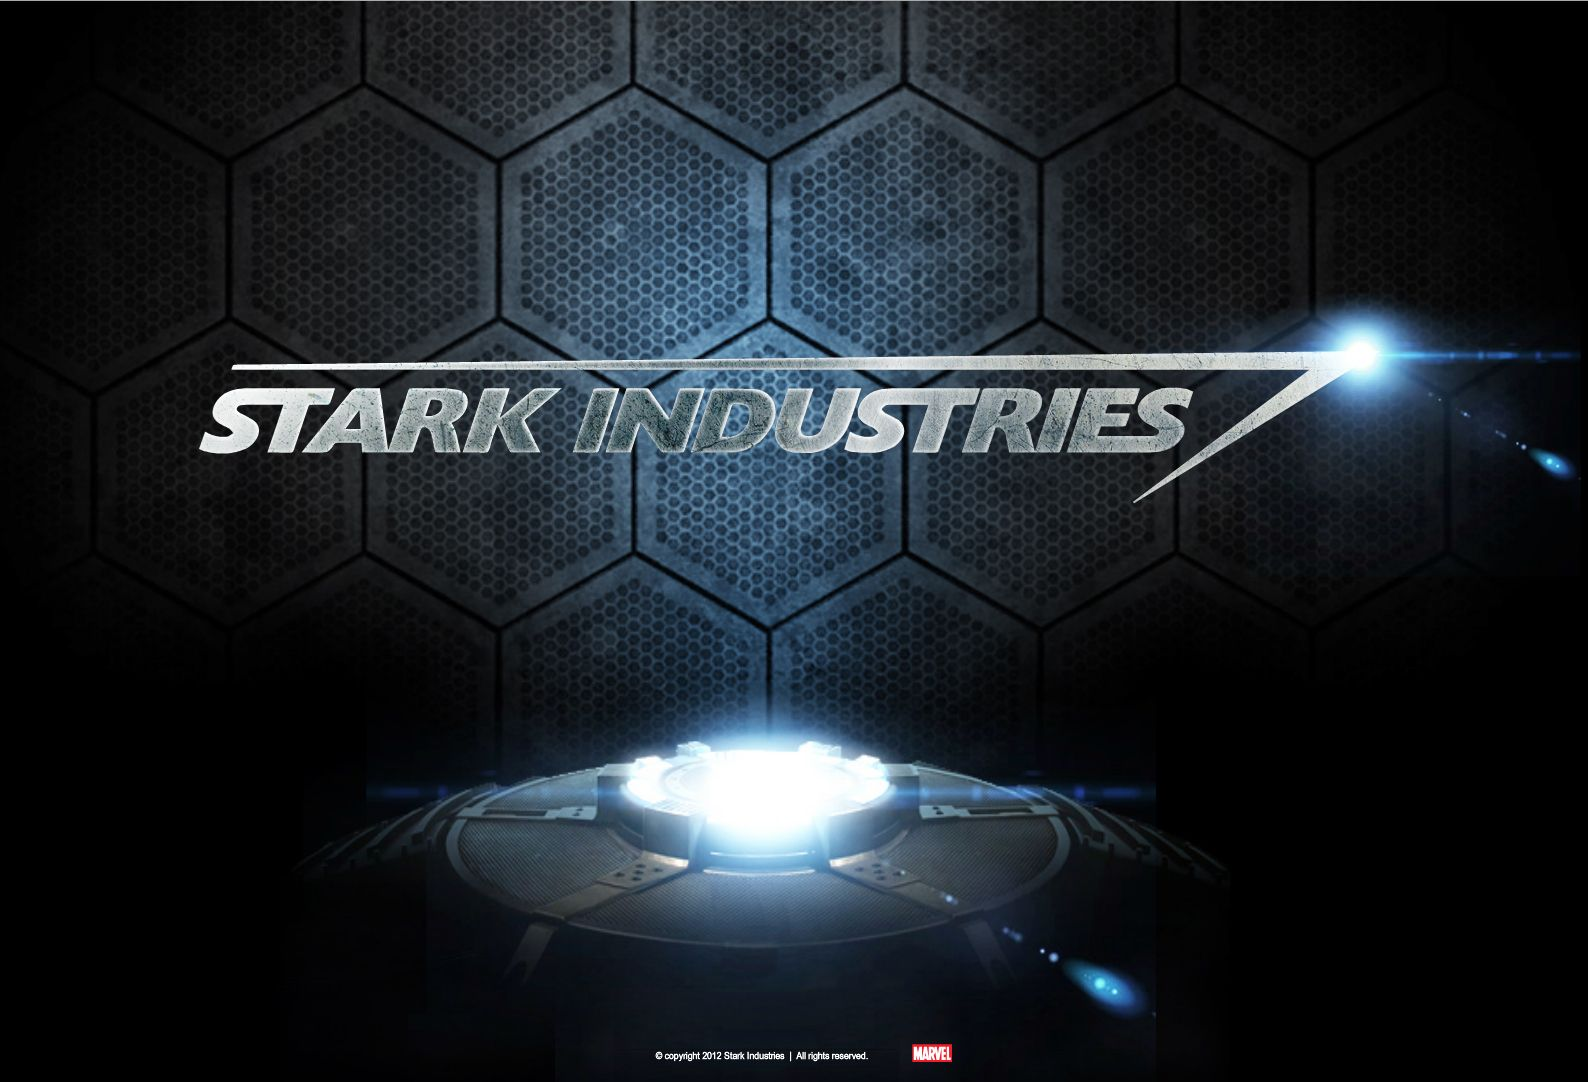 Wallpapers For Stark Industries Wallpaper Iphone Þーベル